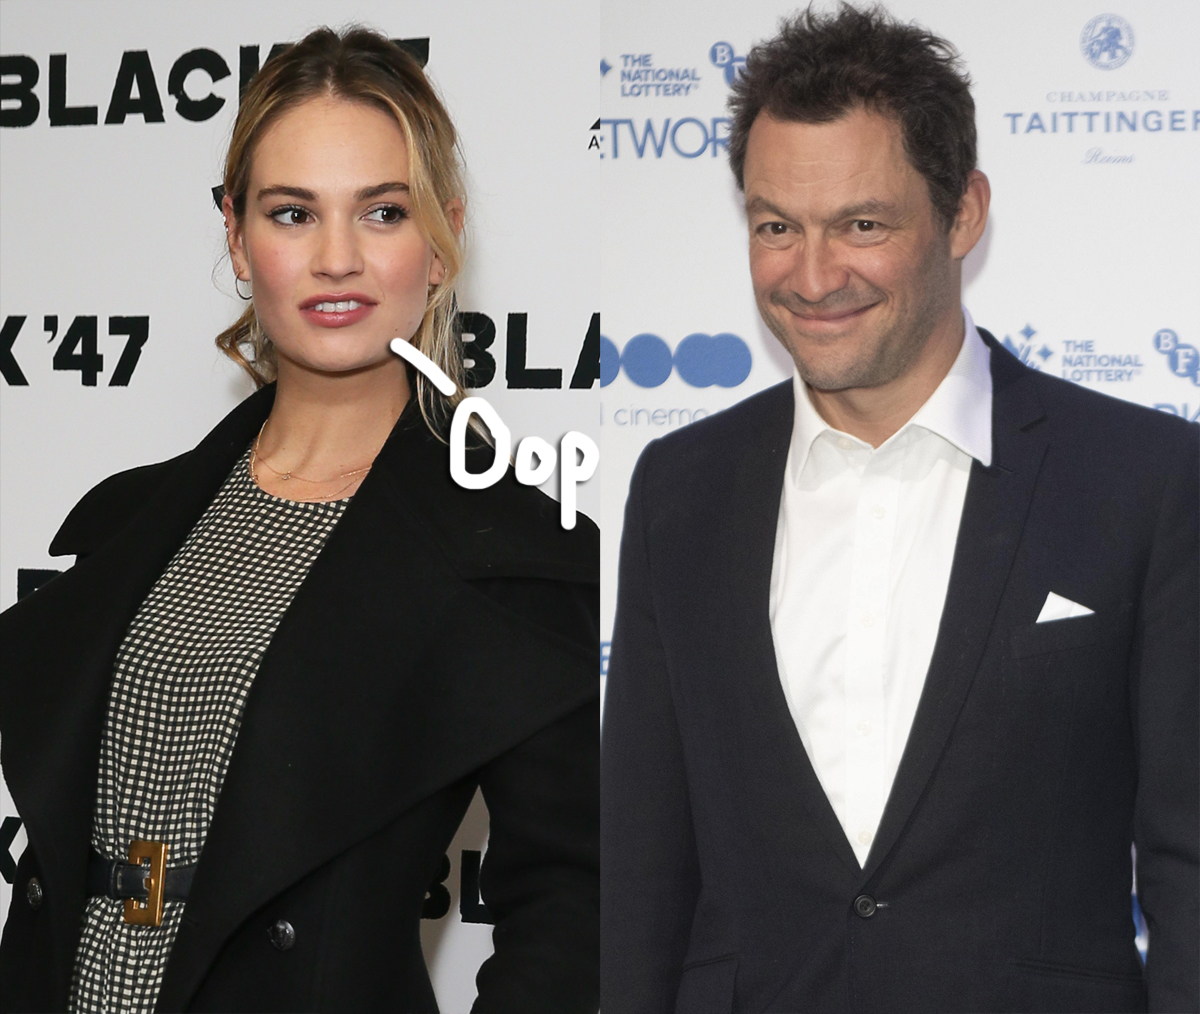 Lily James Dominic West kissing photos horrified